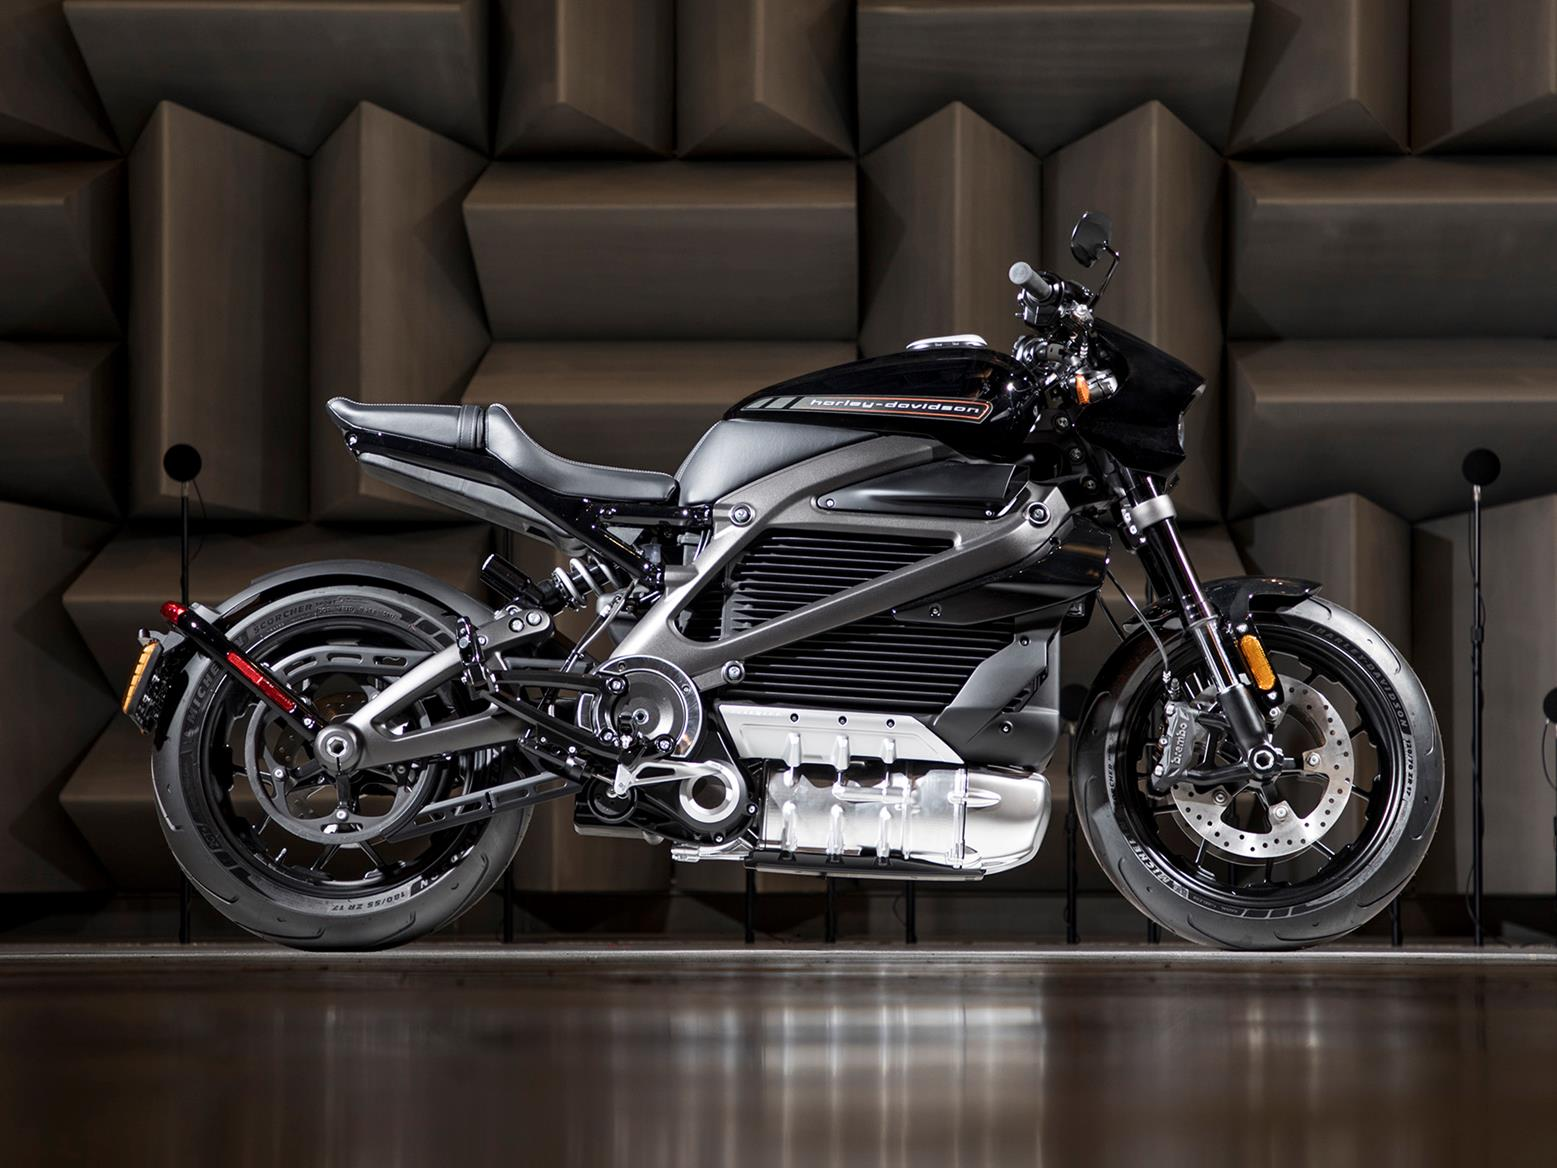 Harley-Davidson will launch its electric LiveWire motorcycle in 2019